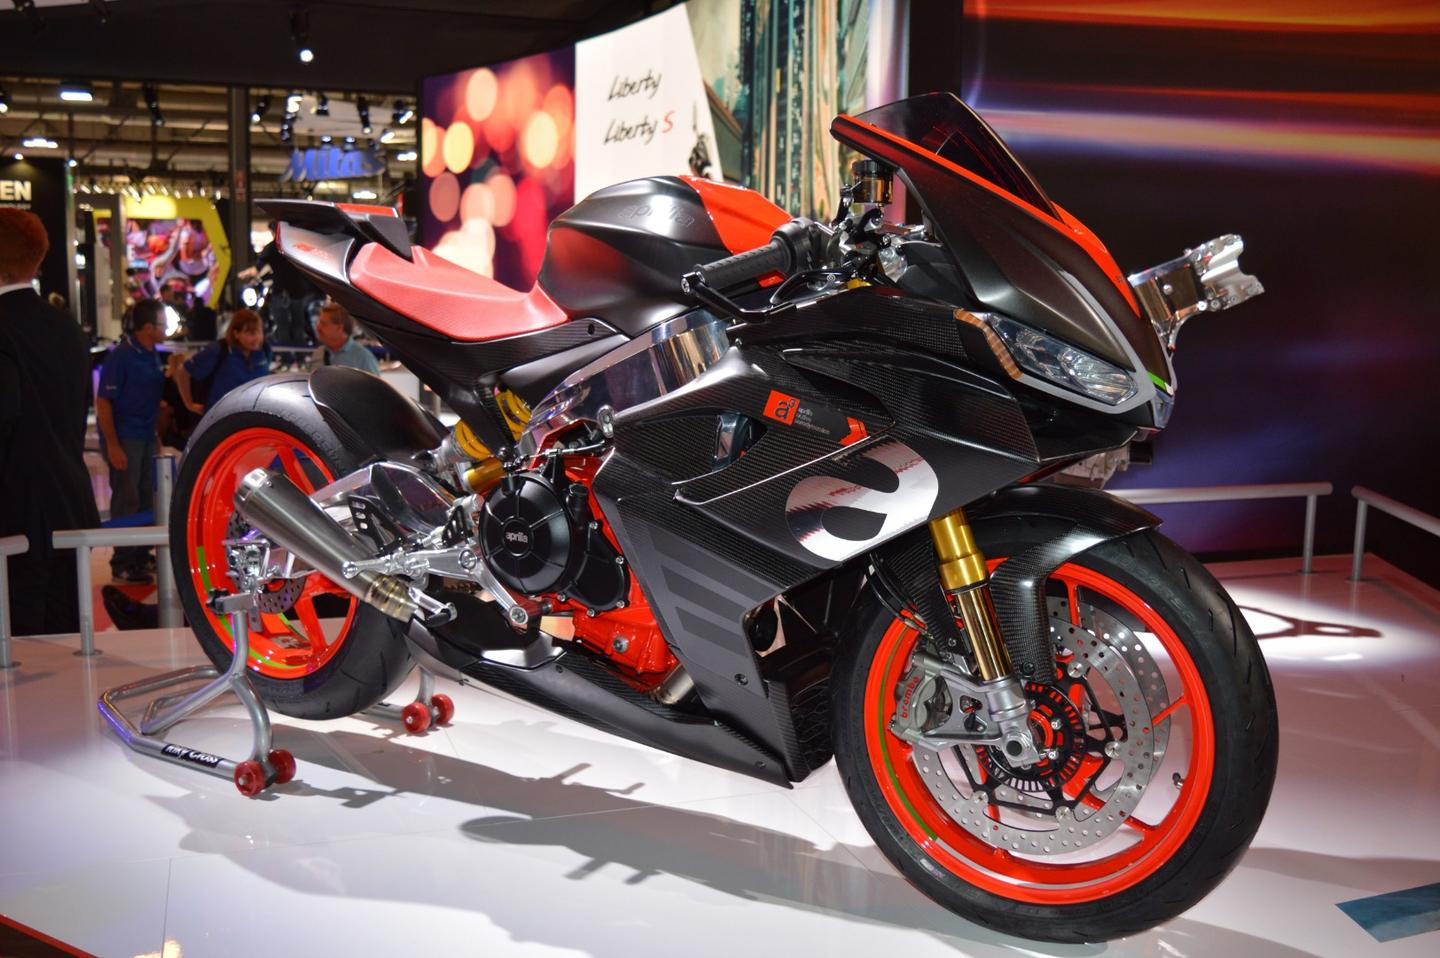 The Concept RS 660 previews an upcoming mid-level model family built around an in-line twin engine born out of the front cylinder bank of Aprilia's V4 superbike